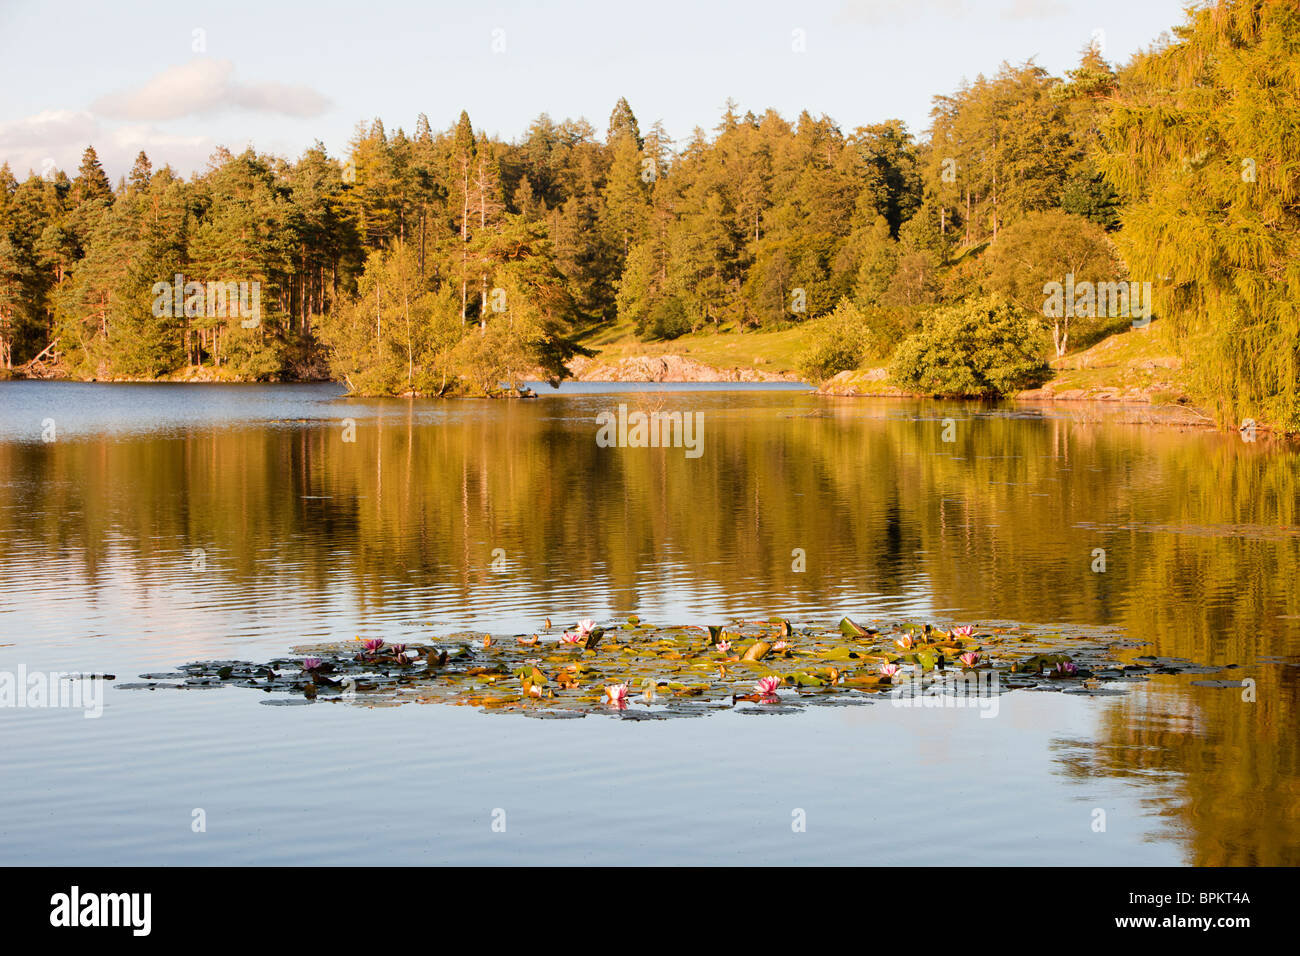 Water lillies on Tarn Hows in the Lake district, UK. - Stock Image